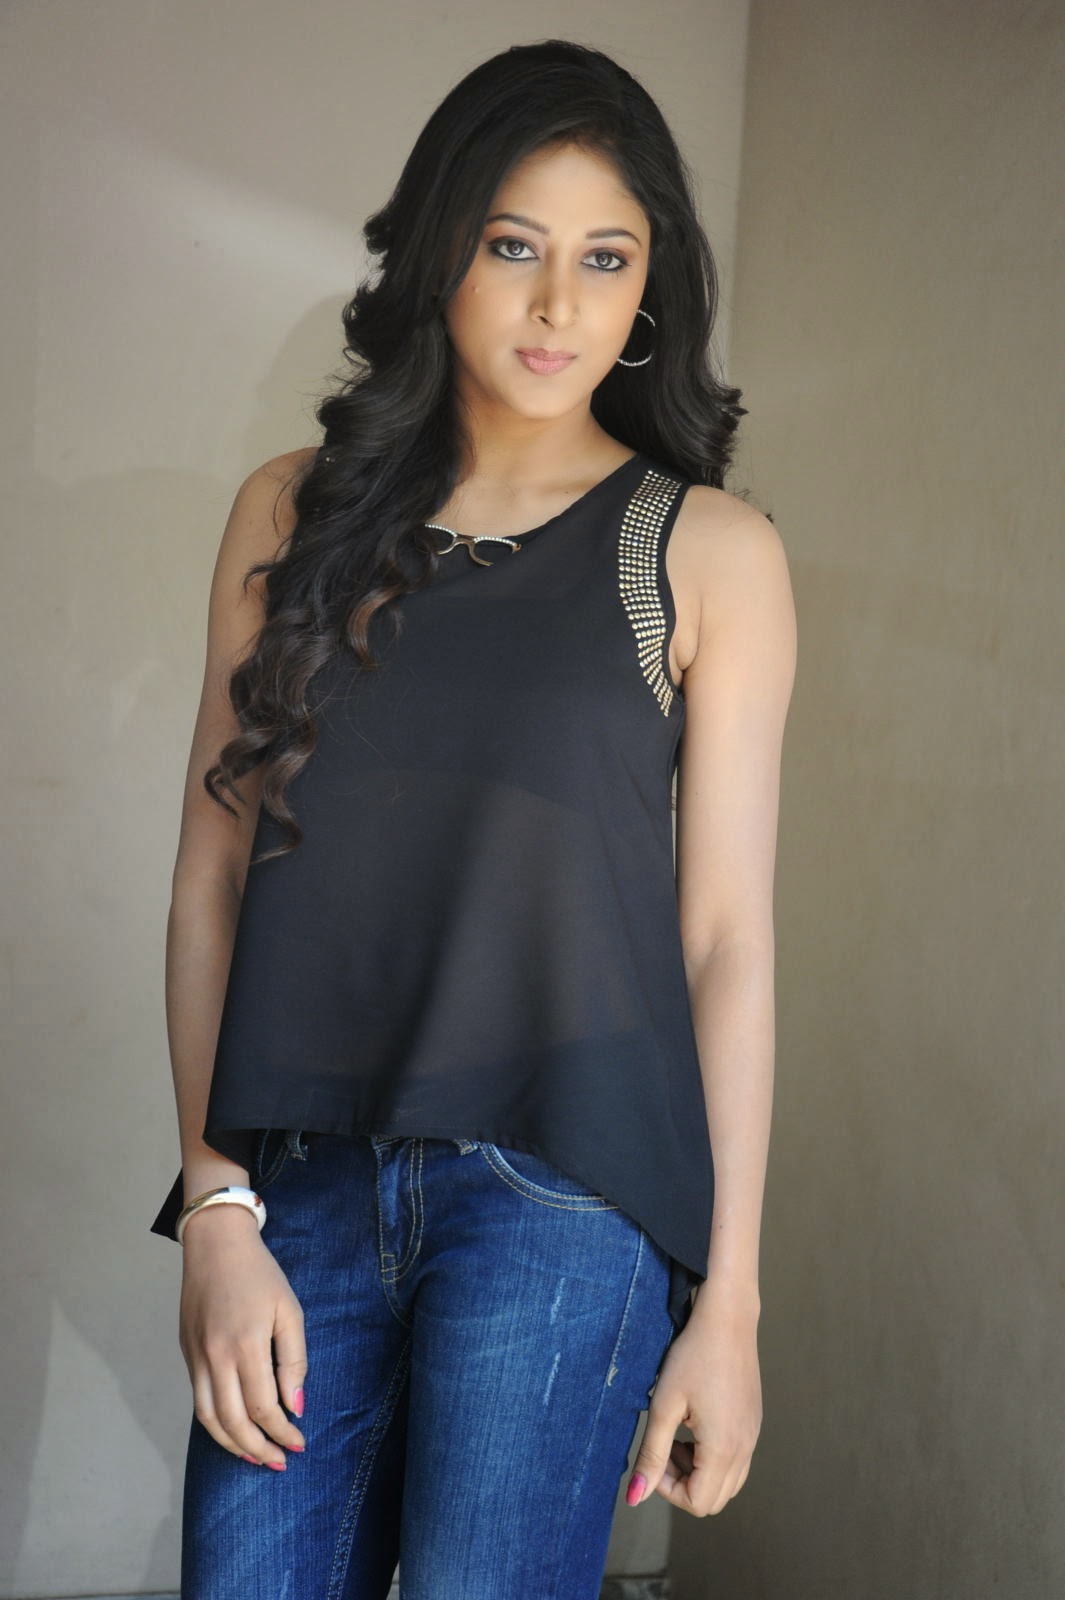 Actress Sushma Raj Hot Spicy Wet Black Top and Jeans